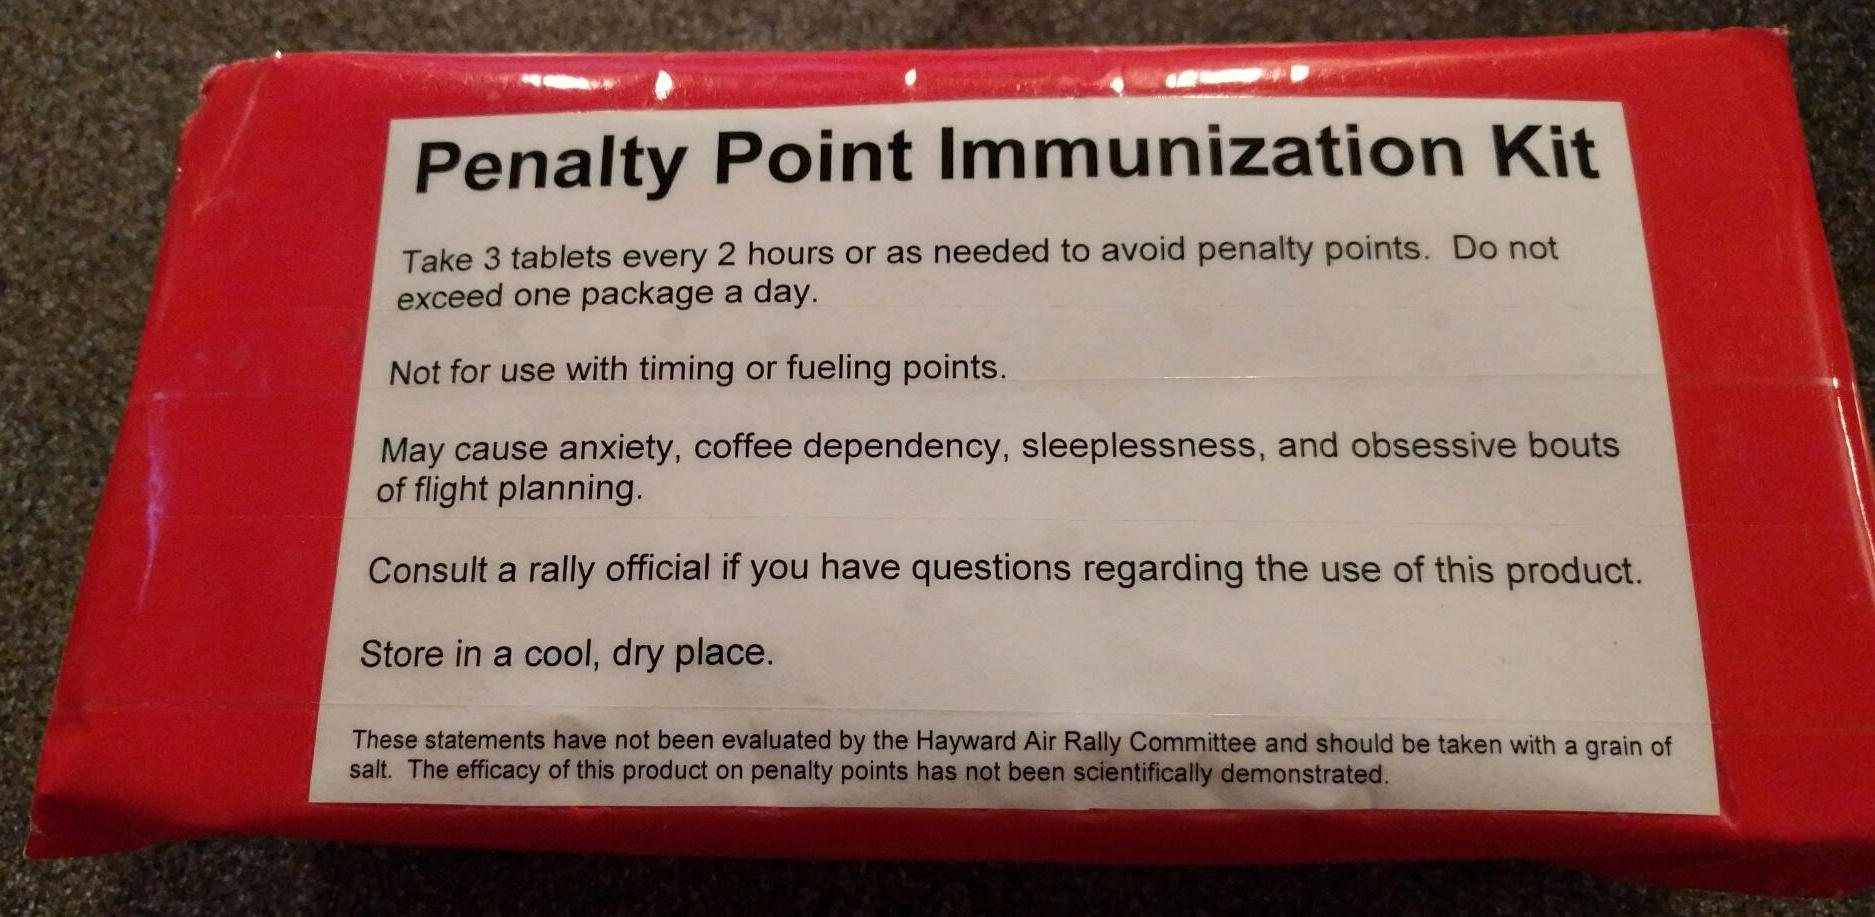 Penaly Points Immunity Kit